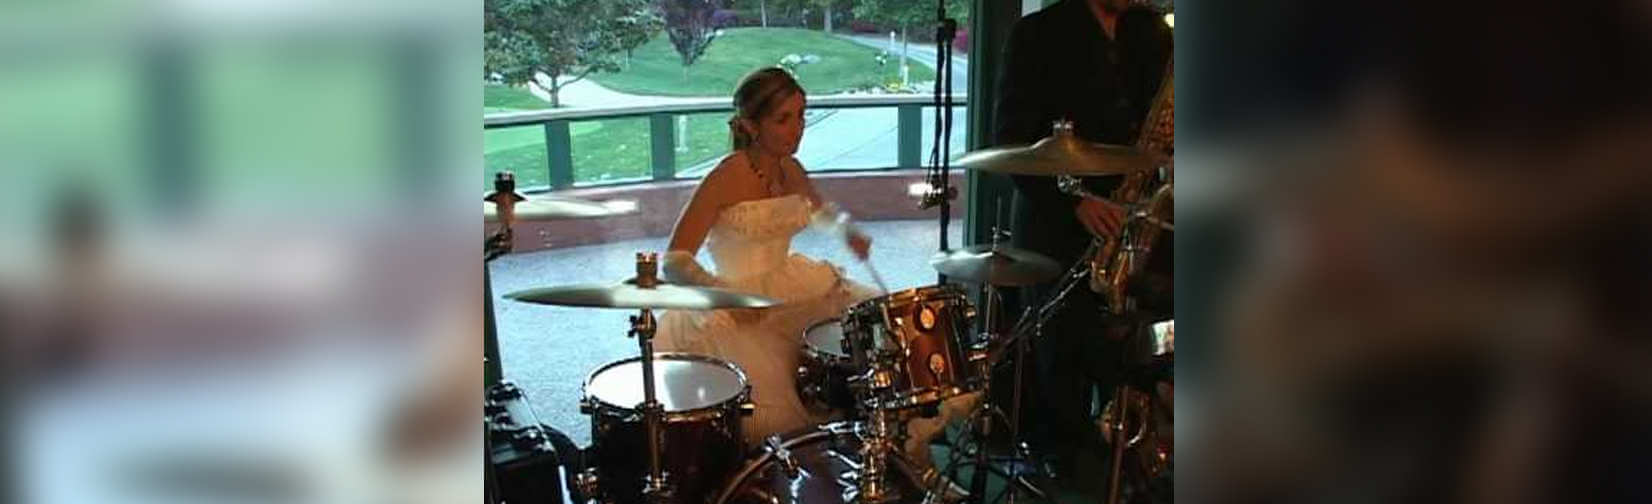 Watch This Bride Rip on a Drum Solo in Her Wedding Gown